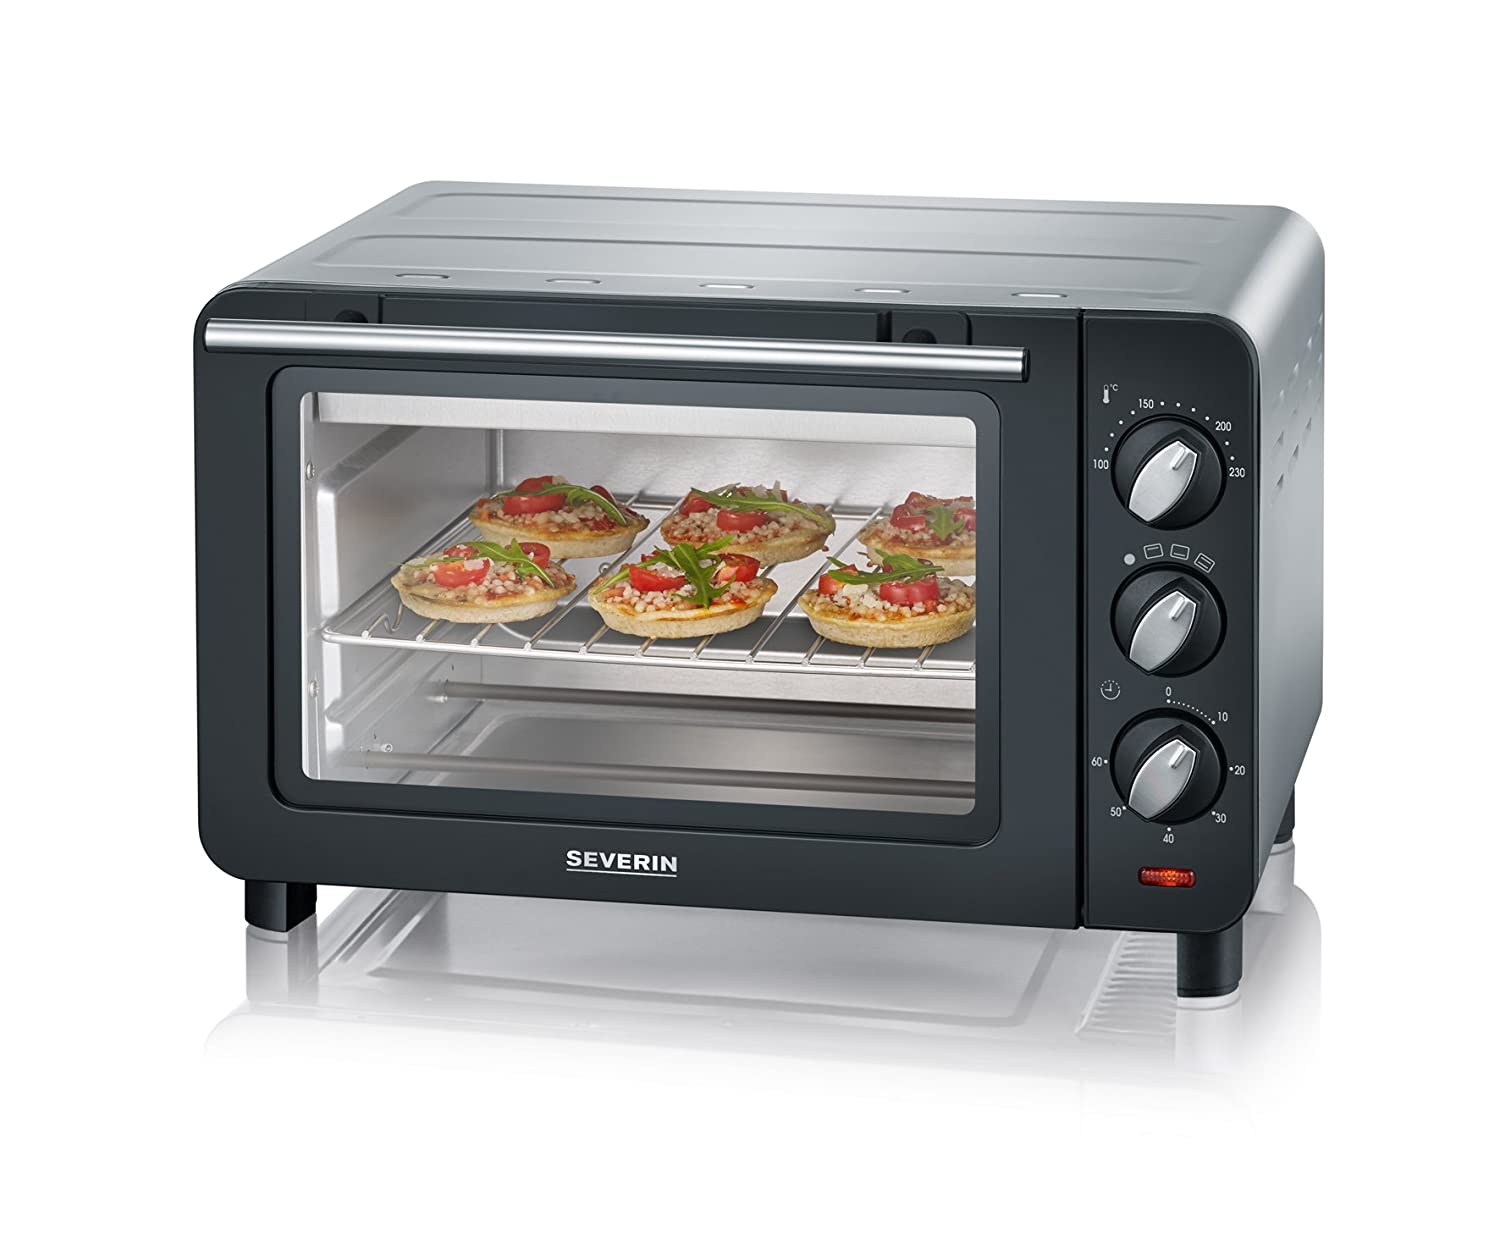 Severin TO 2064 - Horno tostador, 1200 W, color negro y plata